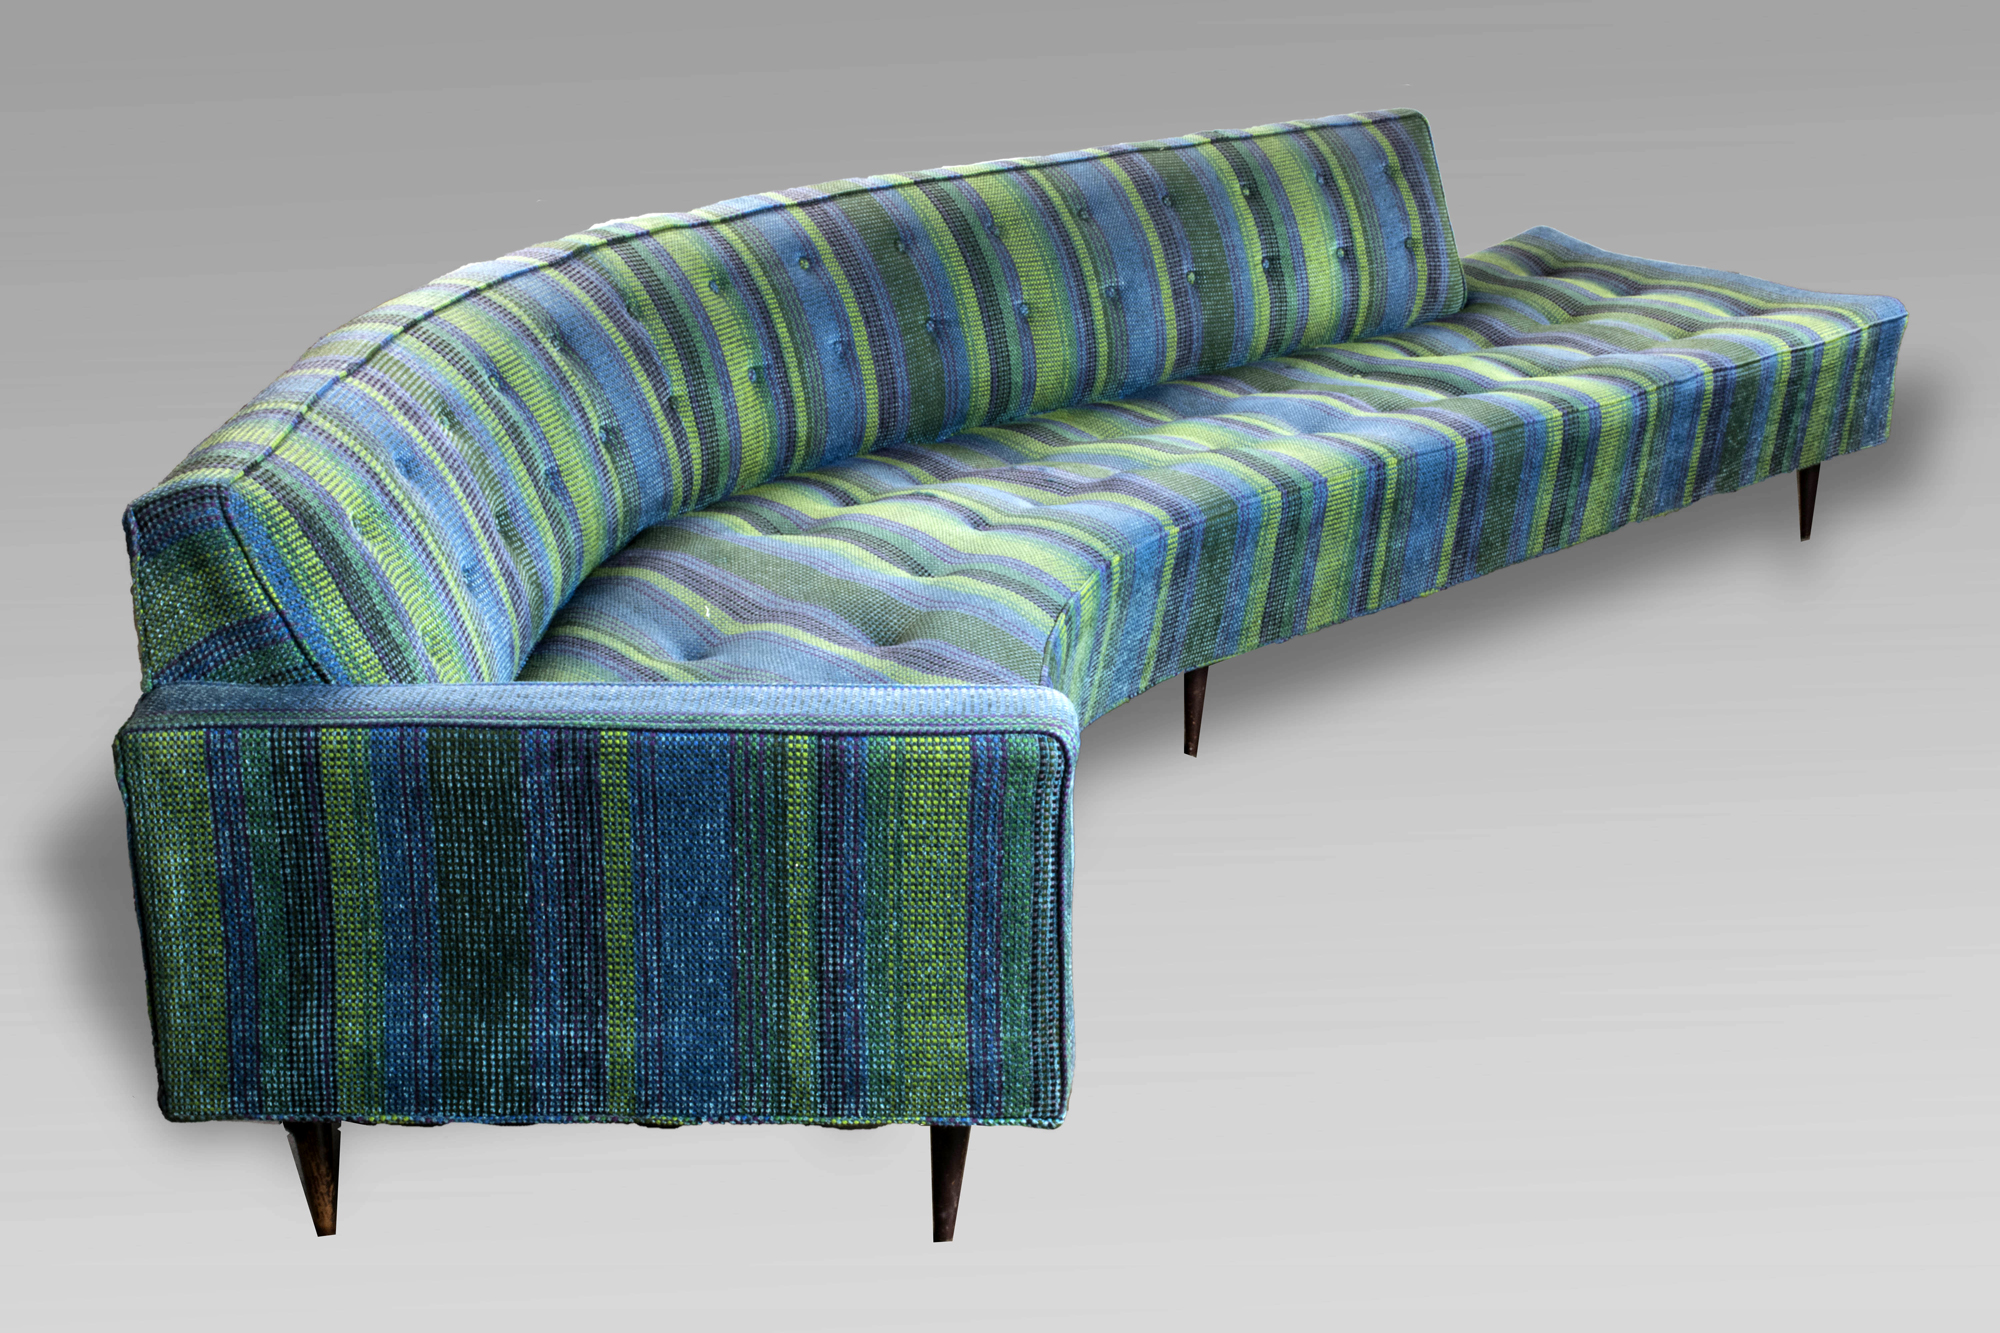 Mid century modern sofa asymmetrical design with one arm tapered legs blue